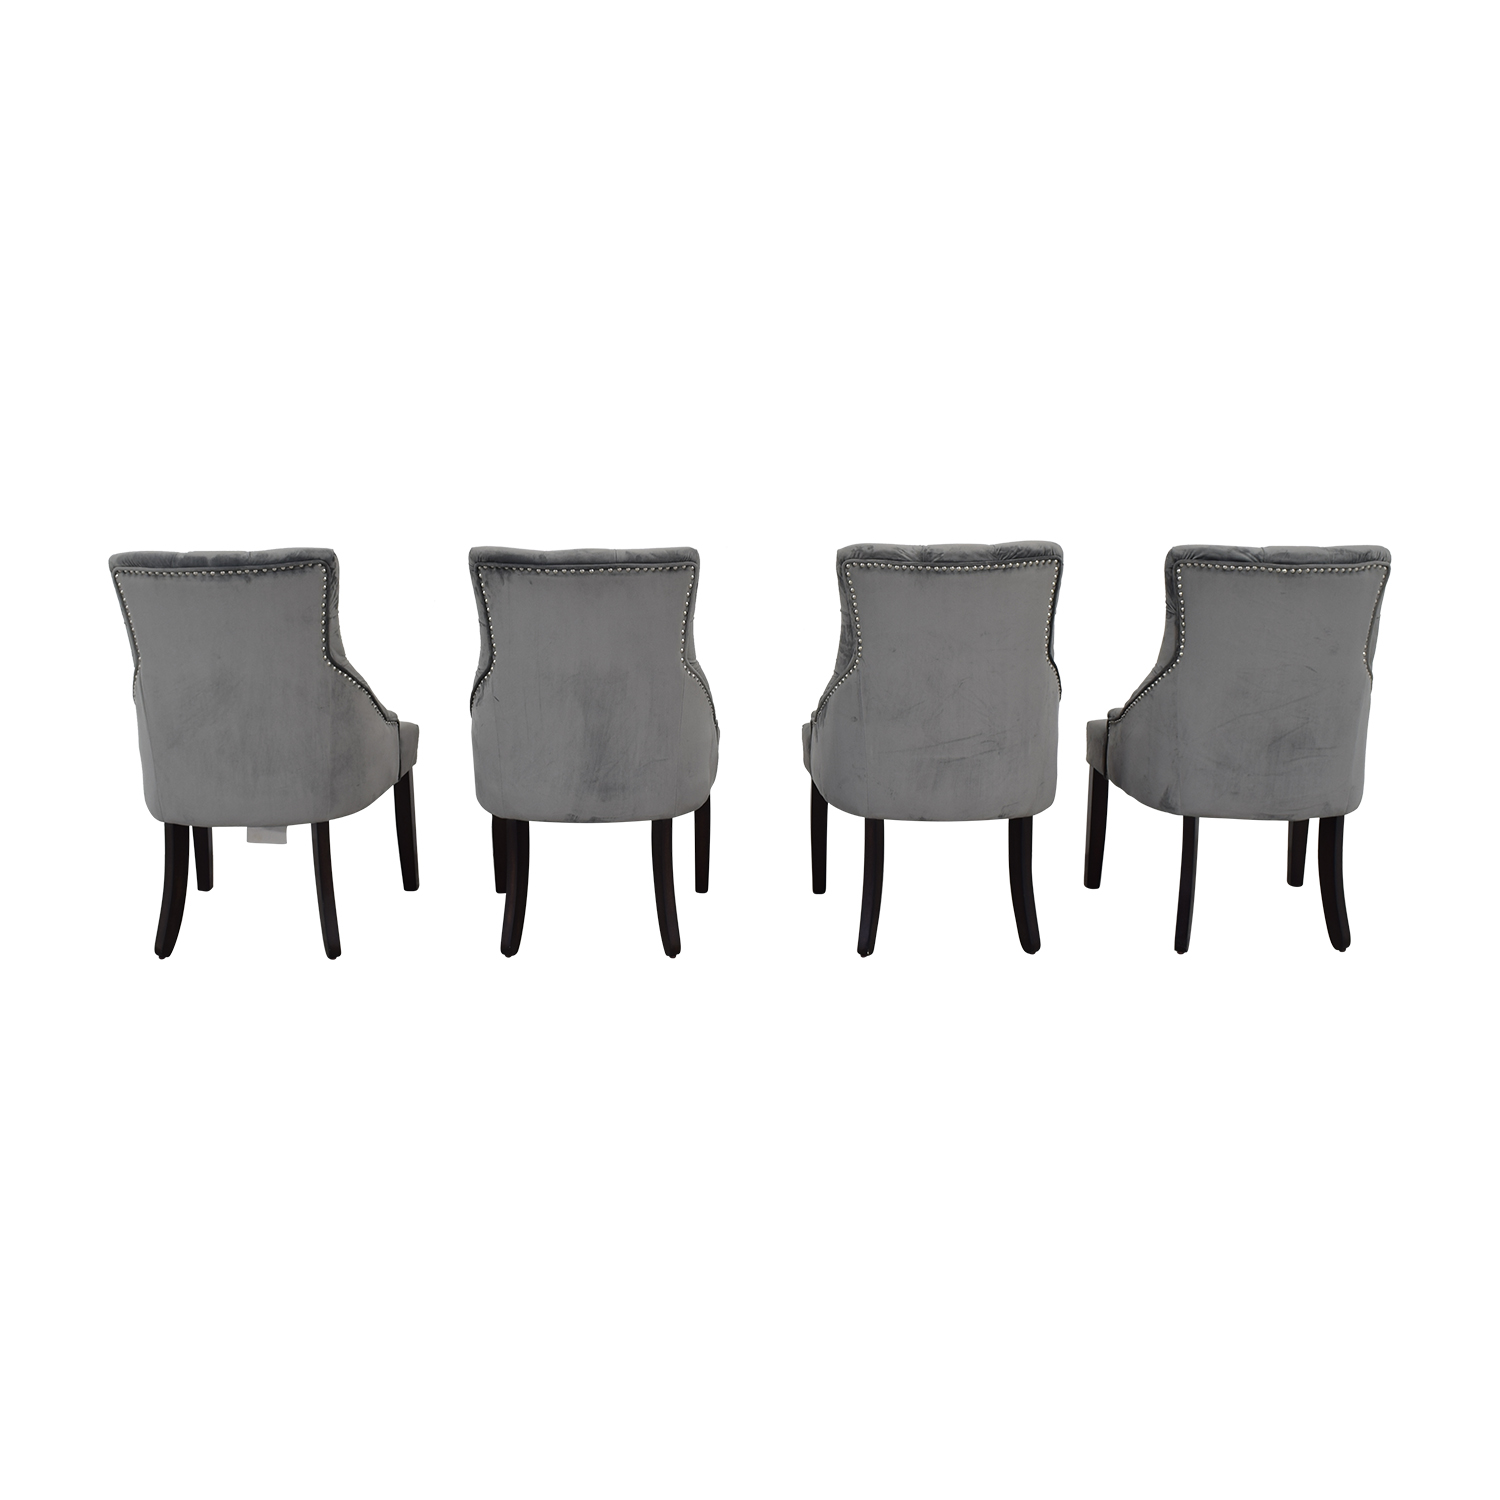 Verona Home Gray Tufted Velvet Dining Chairs sale